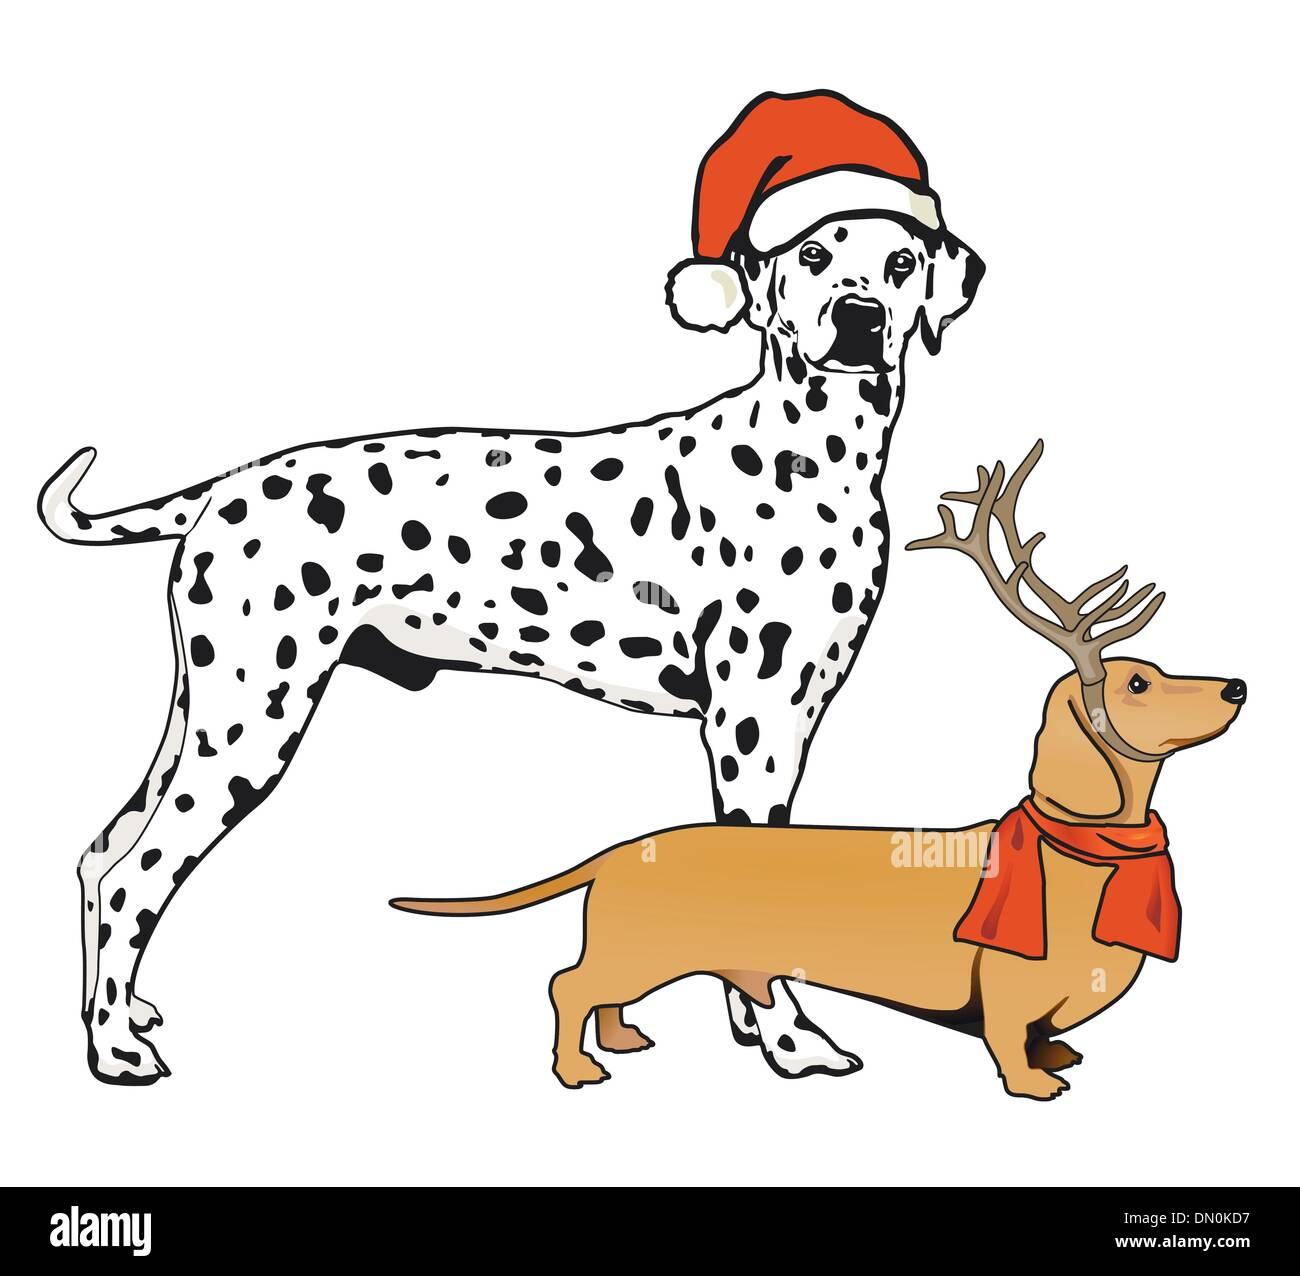 Dachshunds and Dalmatian - Stock Vector